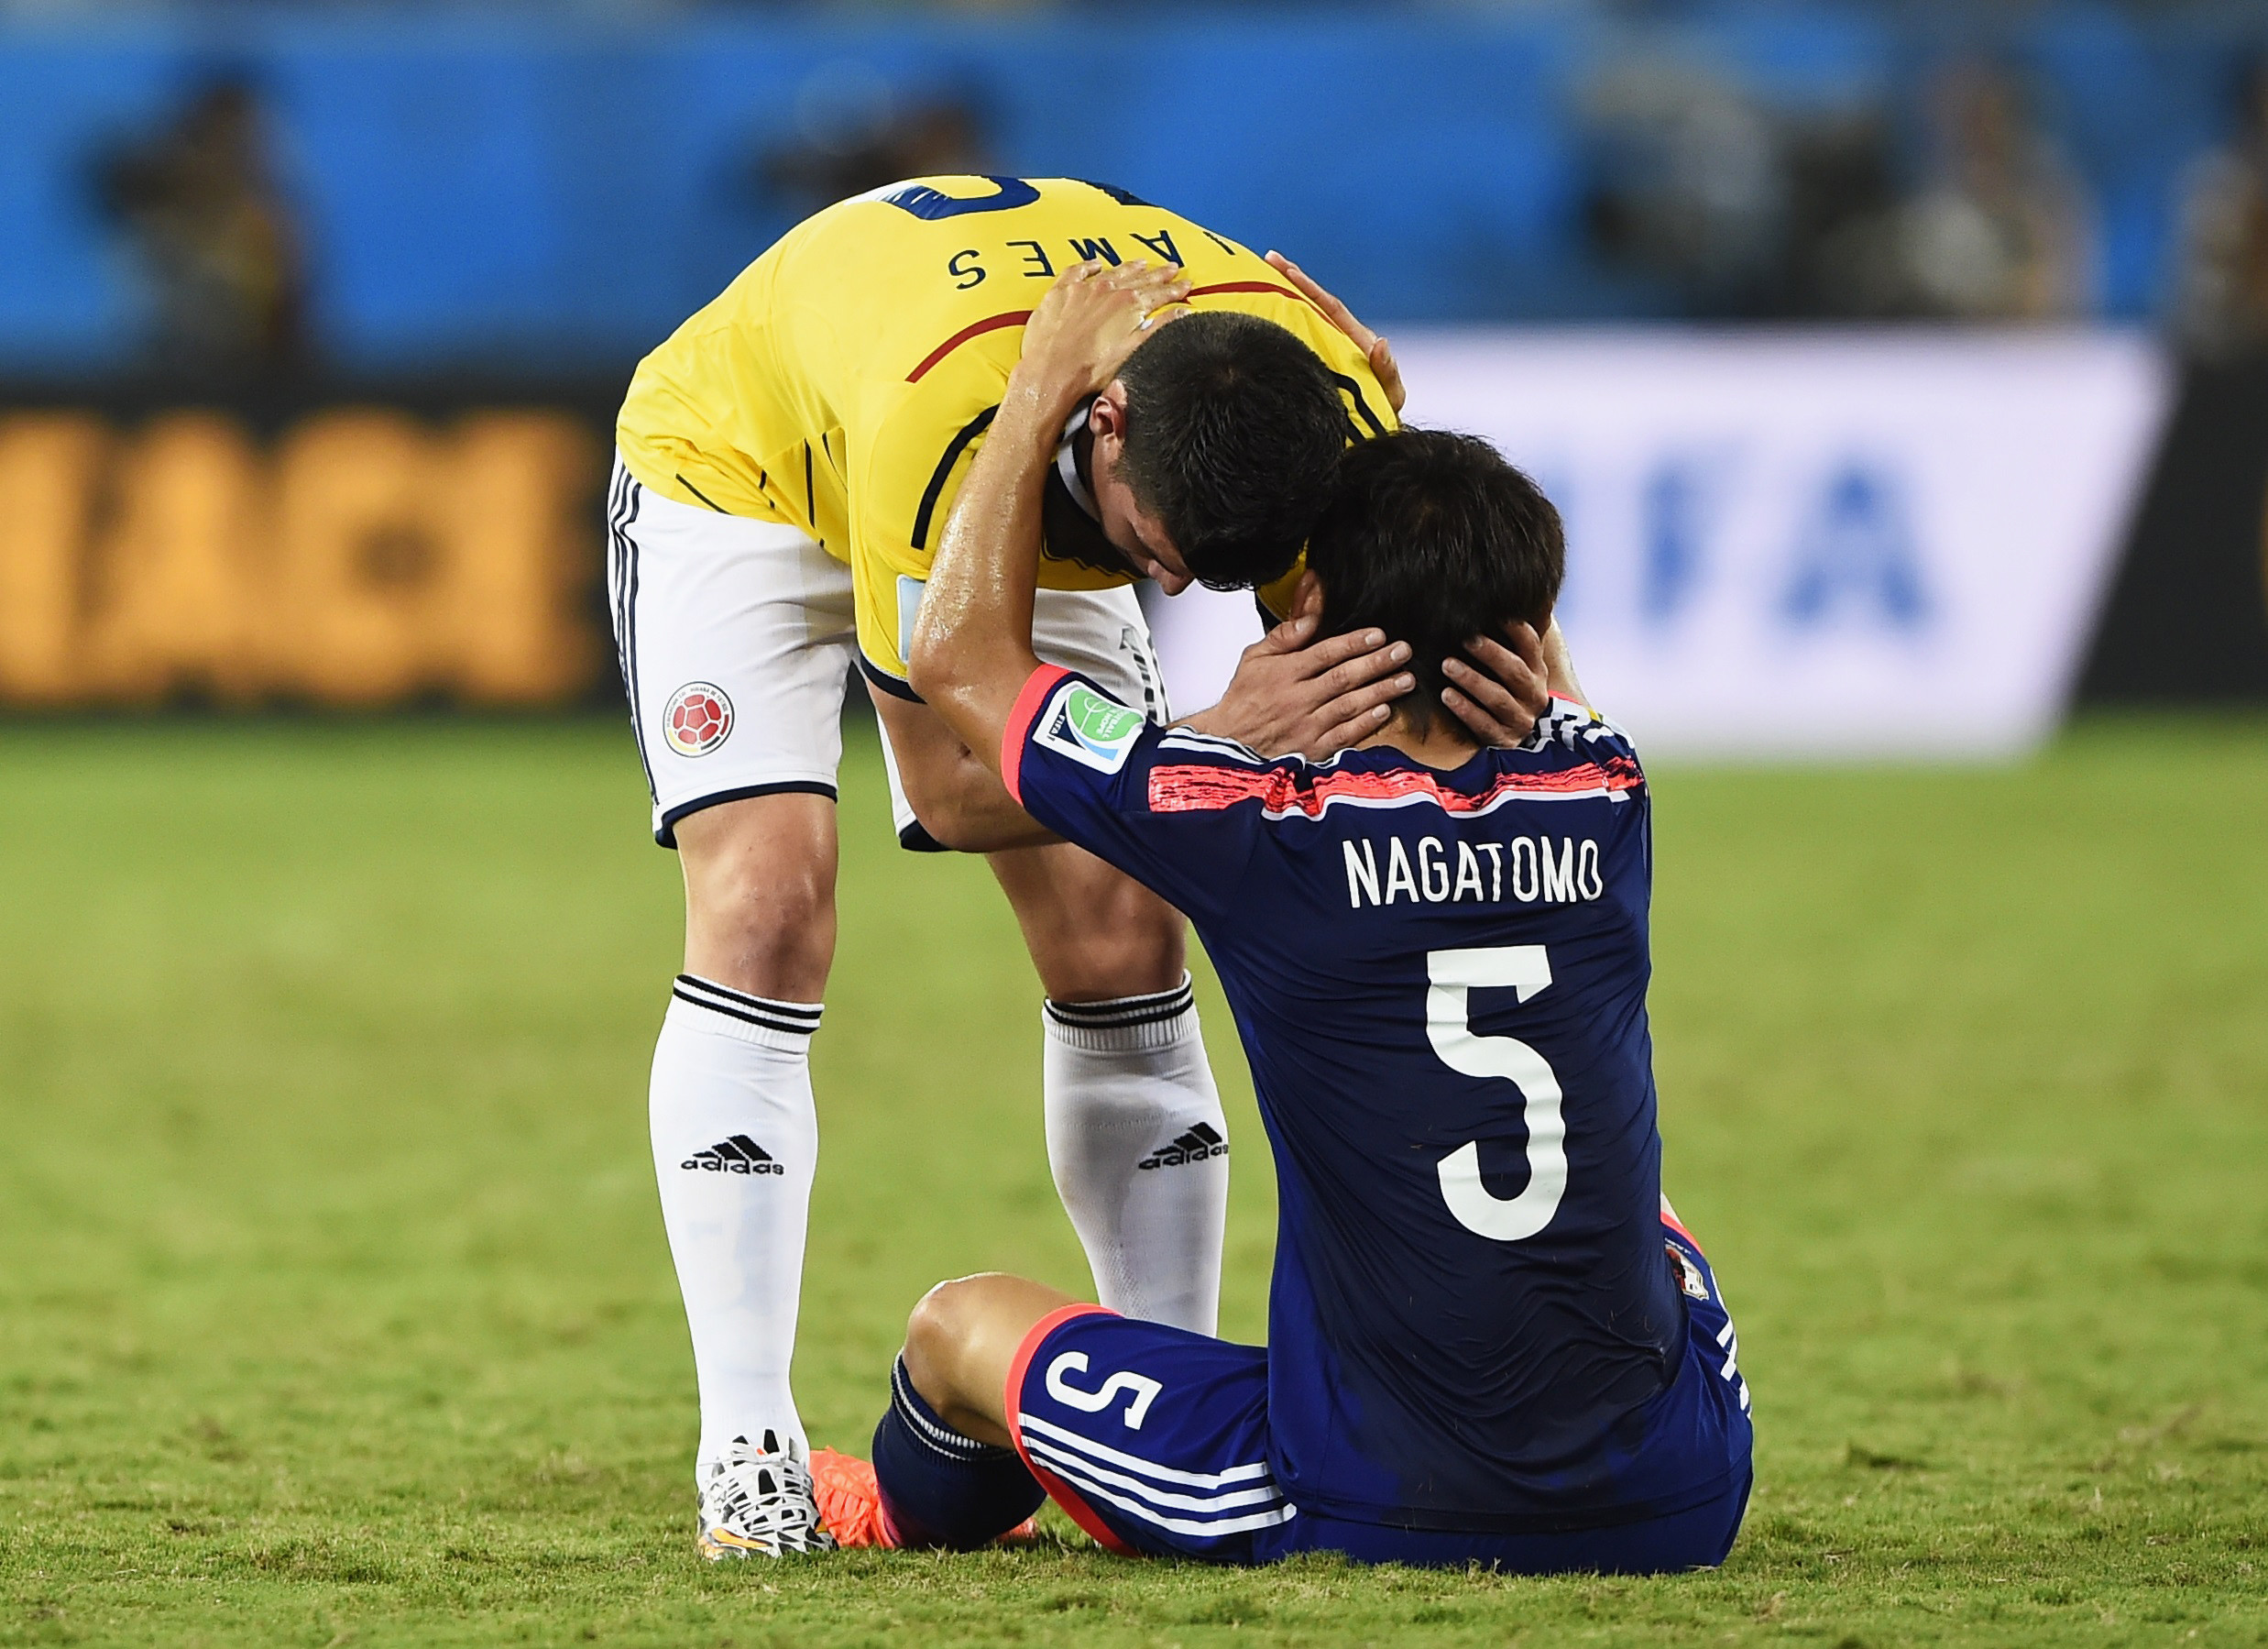 Colombia's James Rodriguez (L) greets Japan's Yuto Nagatomo after Colombia won their 2014 World Cup Group C soccer match at the Pantanal arena in Cuiaba June 24, 2014. REUTERS/Dylan Martinez (BRAZIL  - Tags: SOCCER SPORT WORLD CUP)   - TB3EA6O1PIKUR